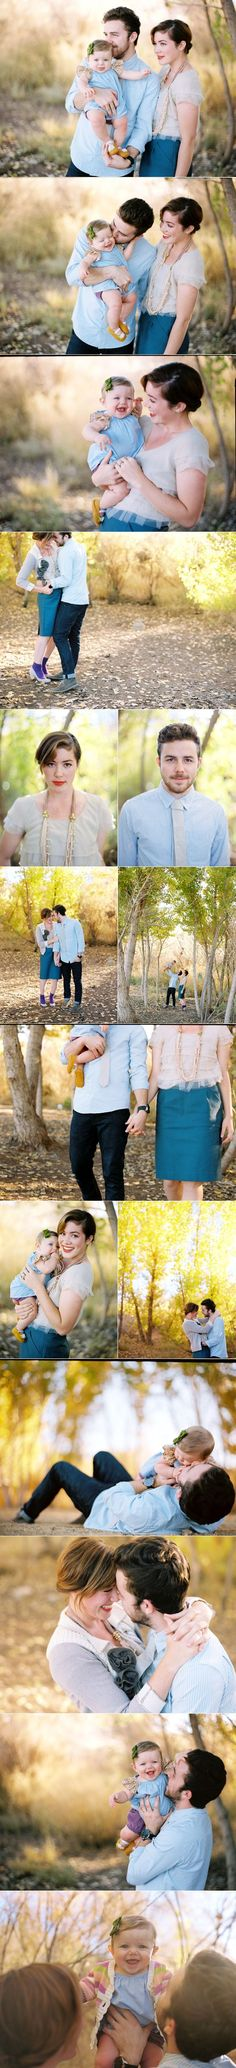 light blue and cream for late summer family portraits / photos shot by Ben Christensen Photography